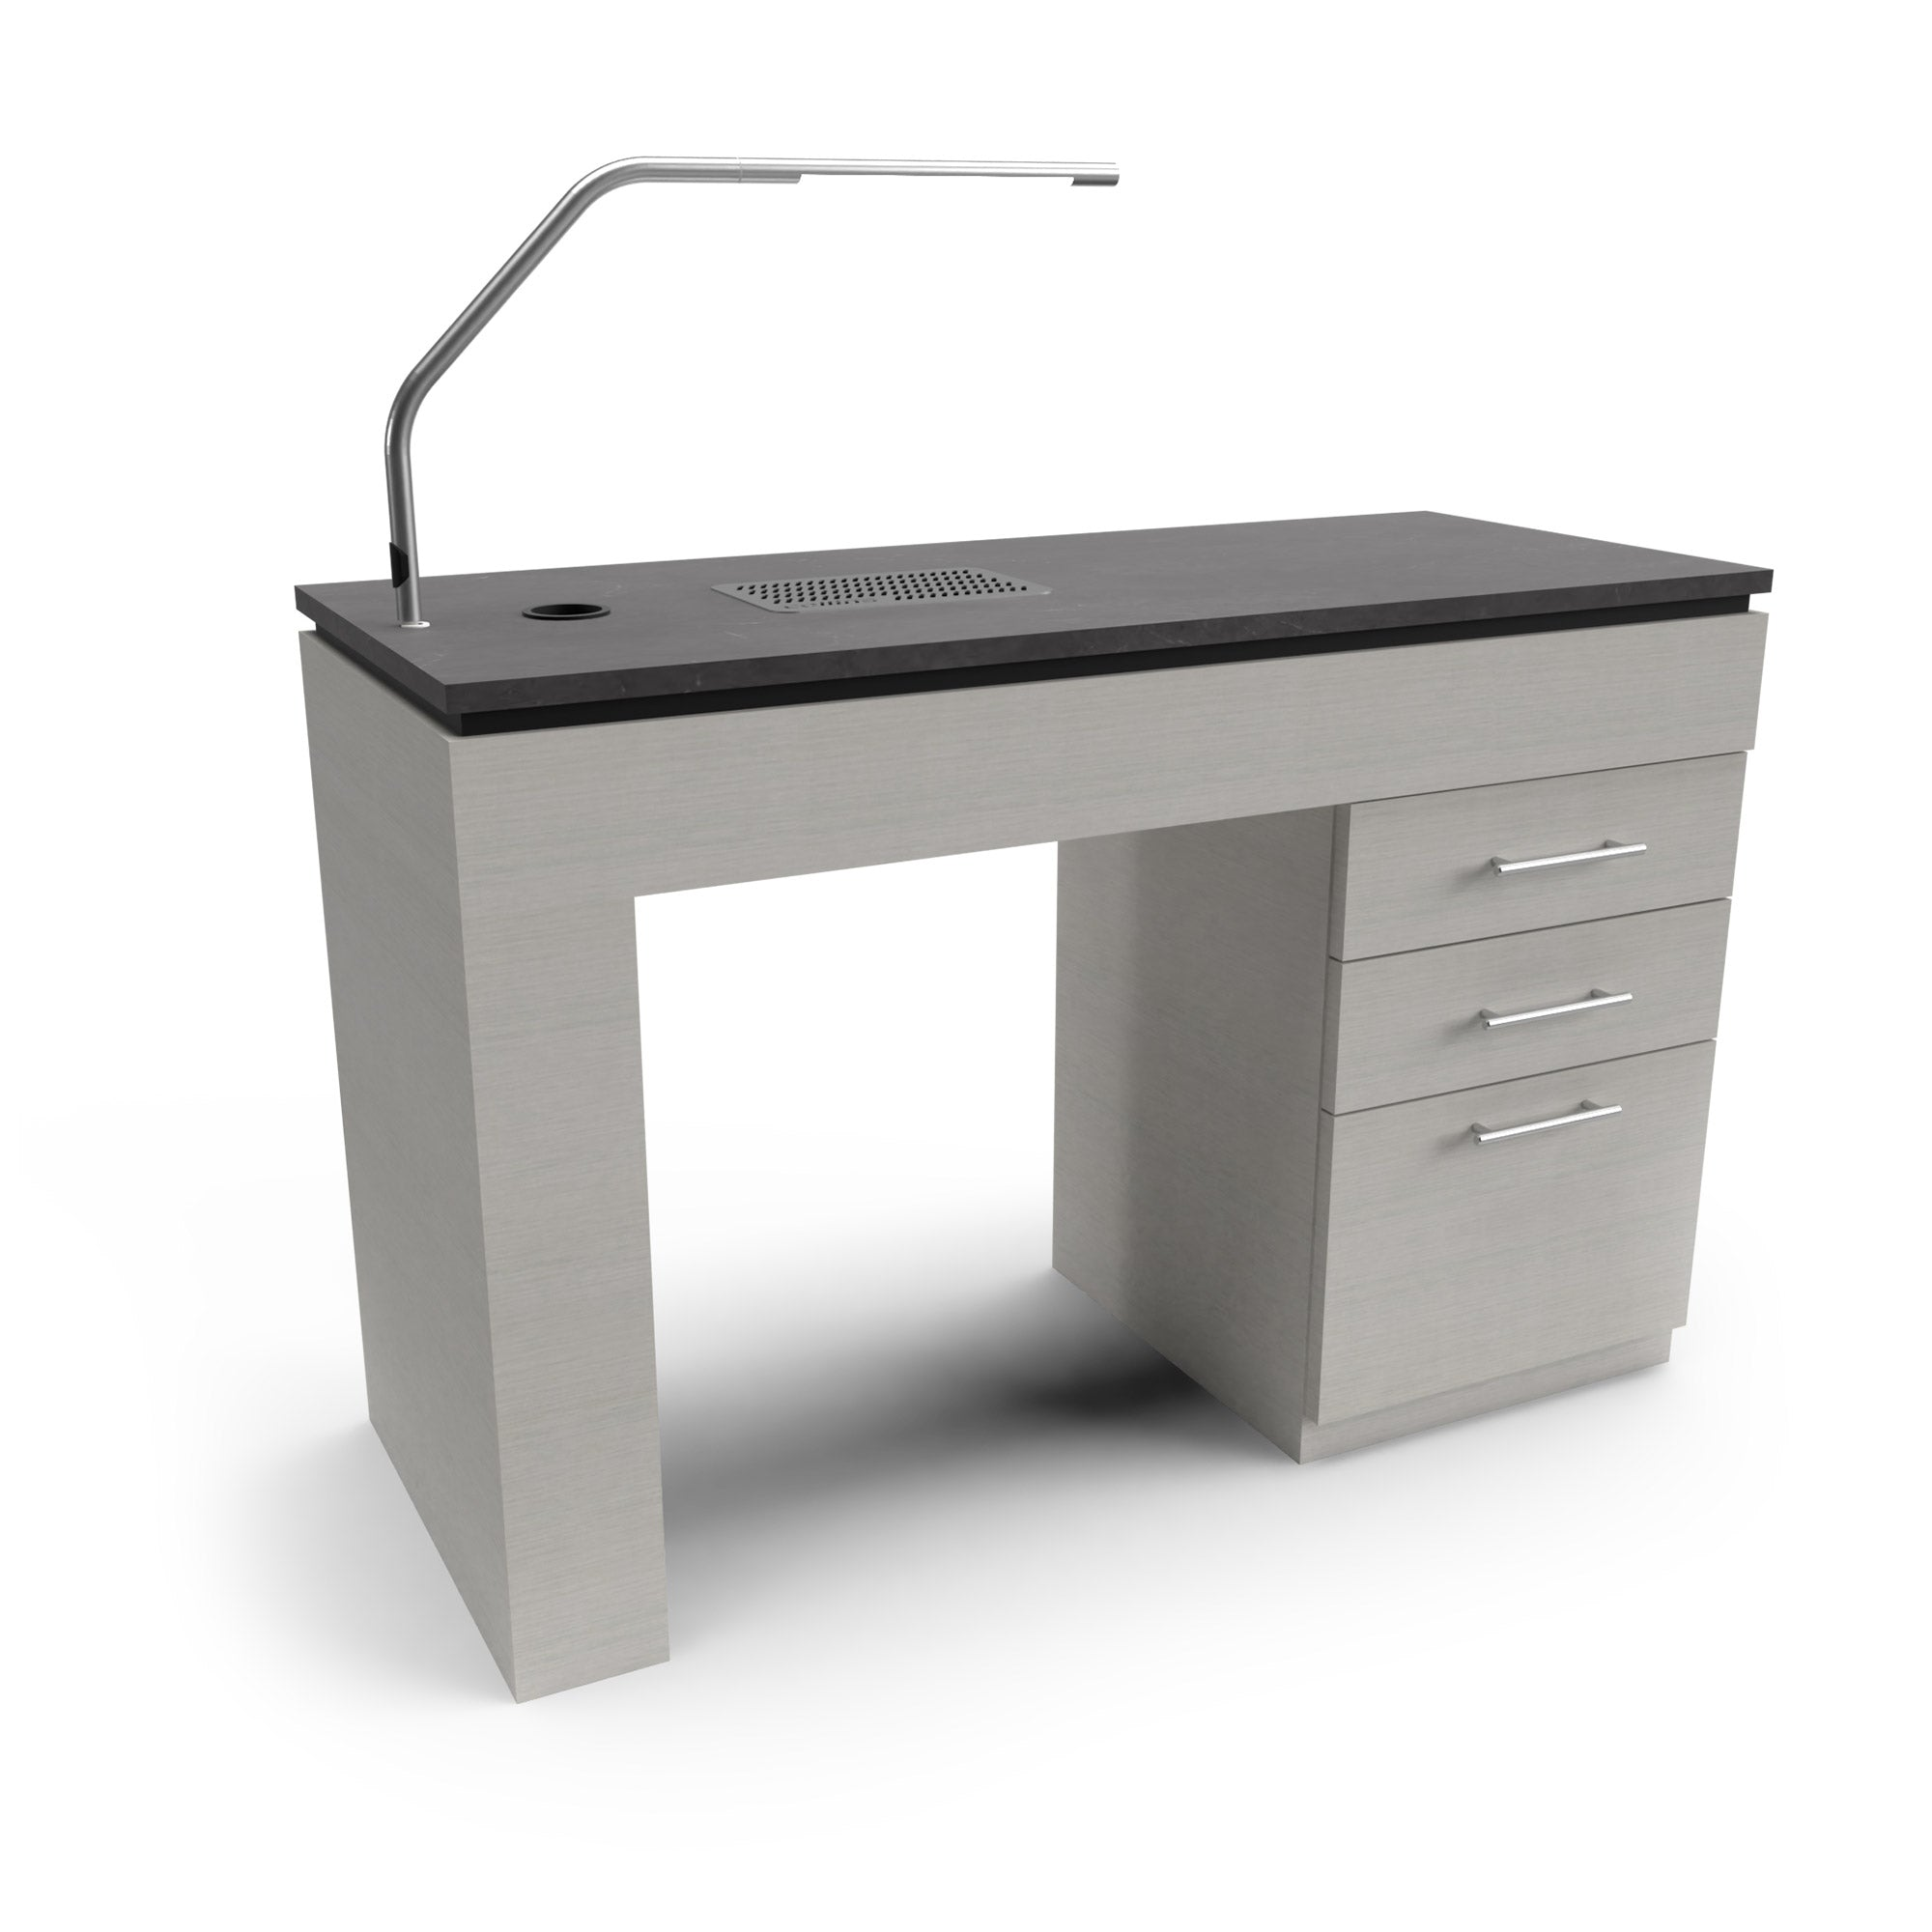 Ducted Manicure Table - Collins